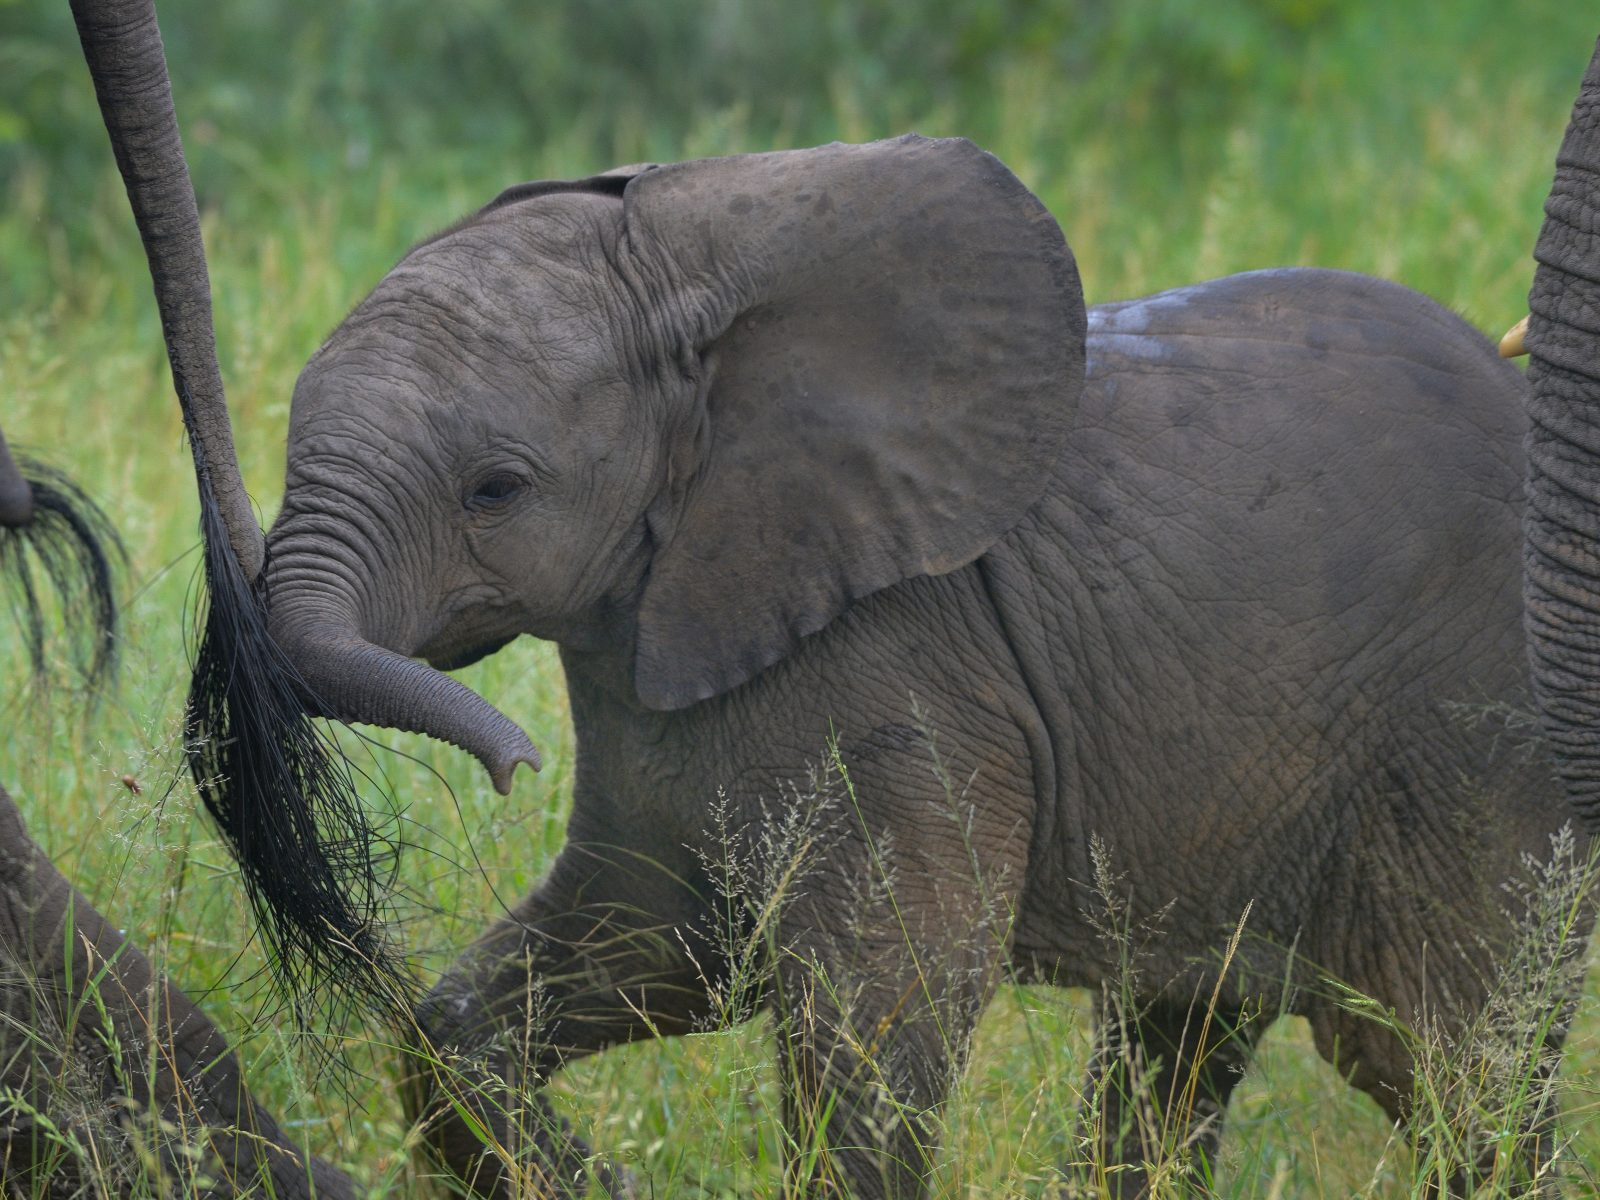 Elephant Calf with Protective Herd